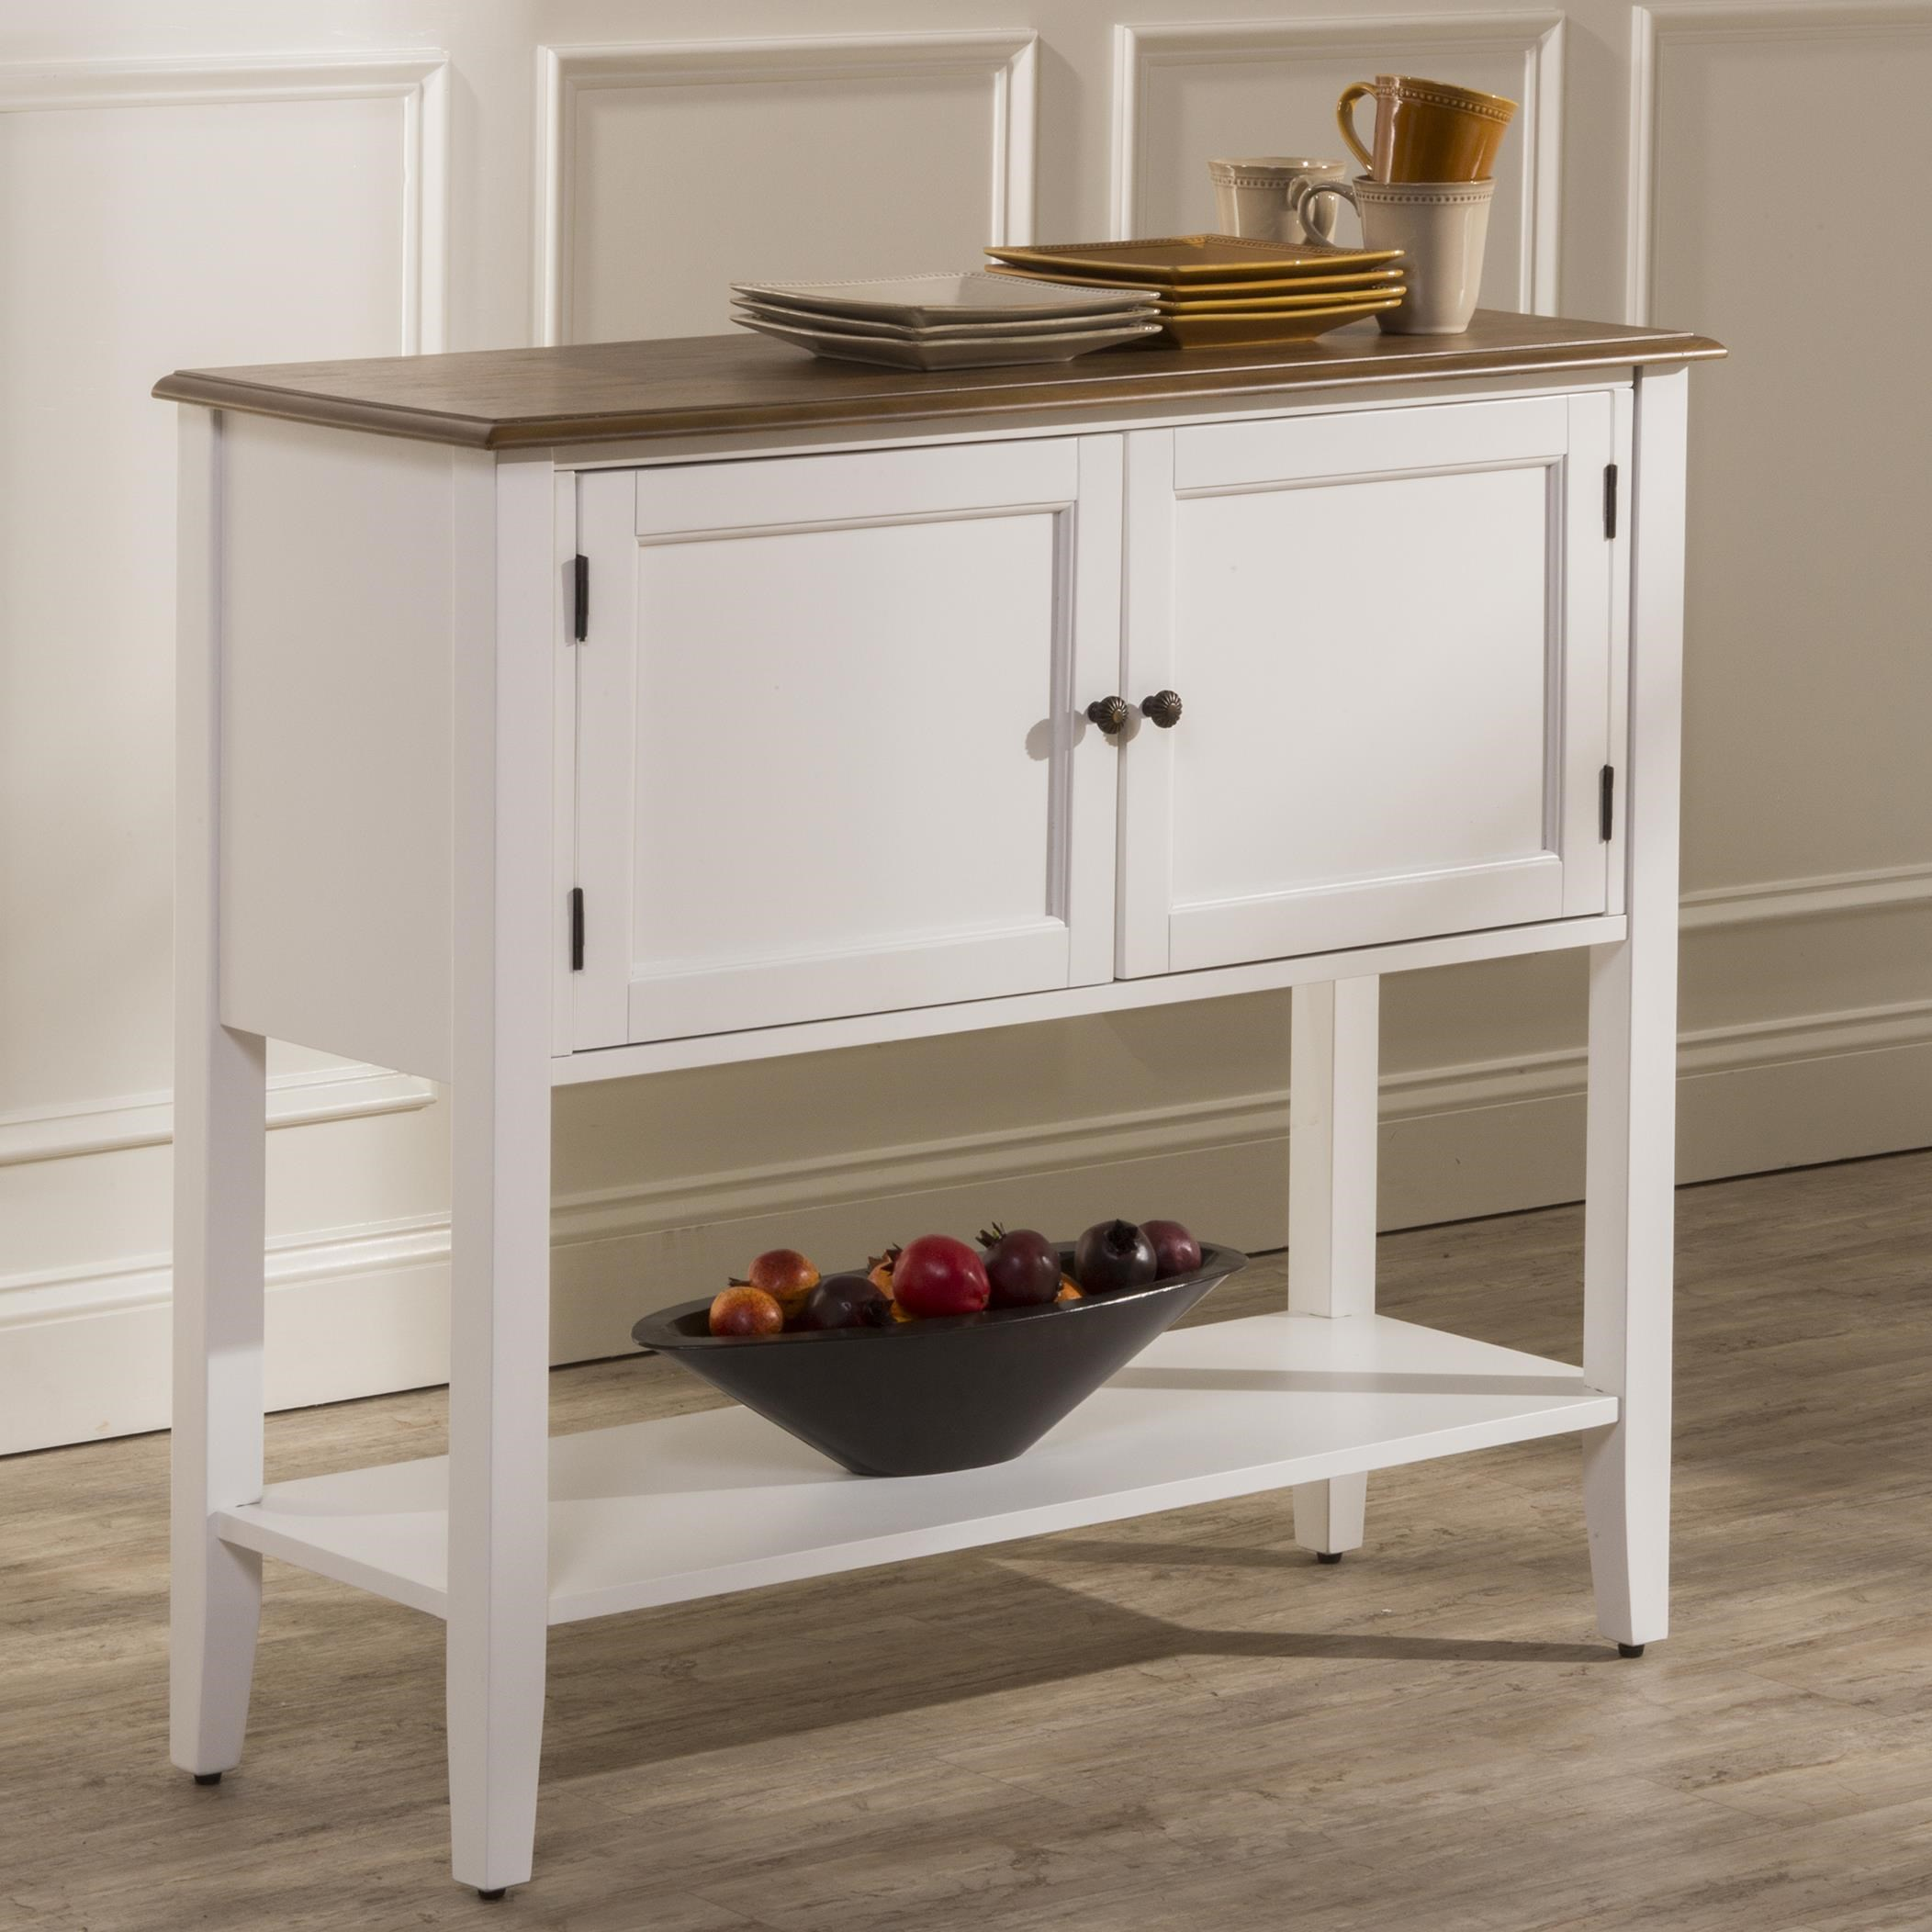 Property Brothers Two Tone Kitchen Cabinets: Hillsdale Bayberry White Two-Toned Dining Server With